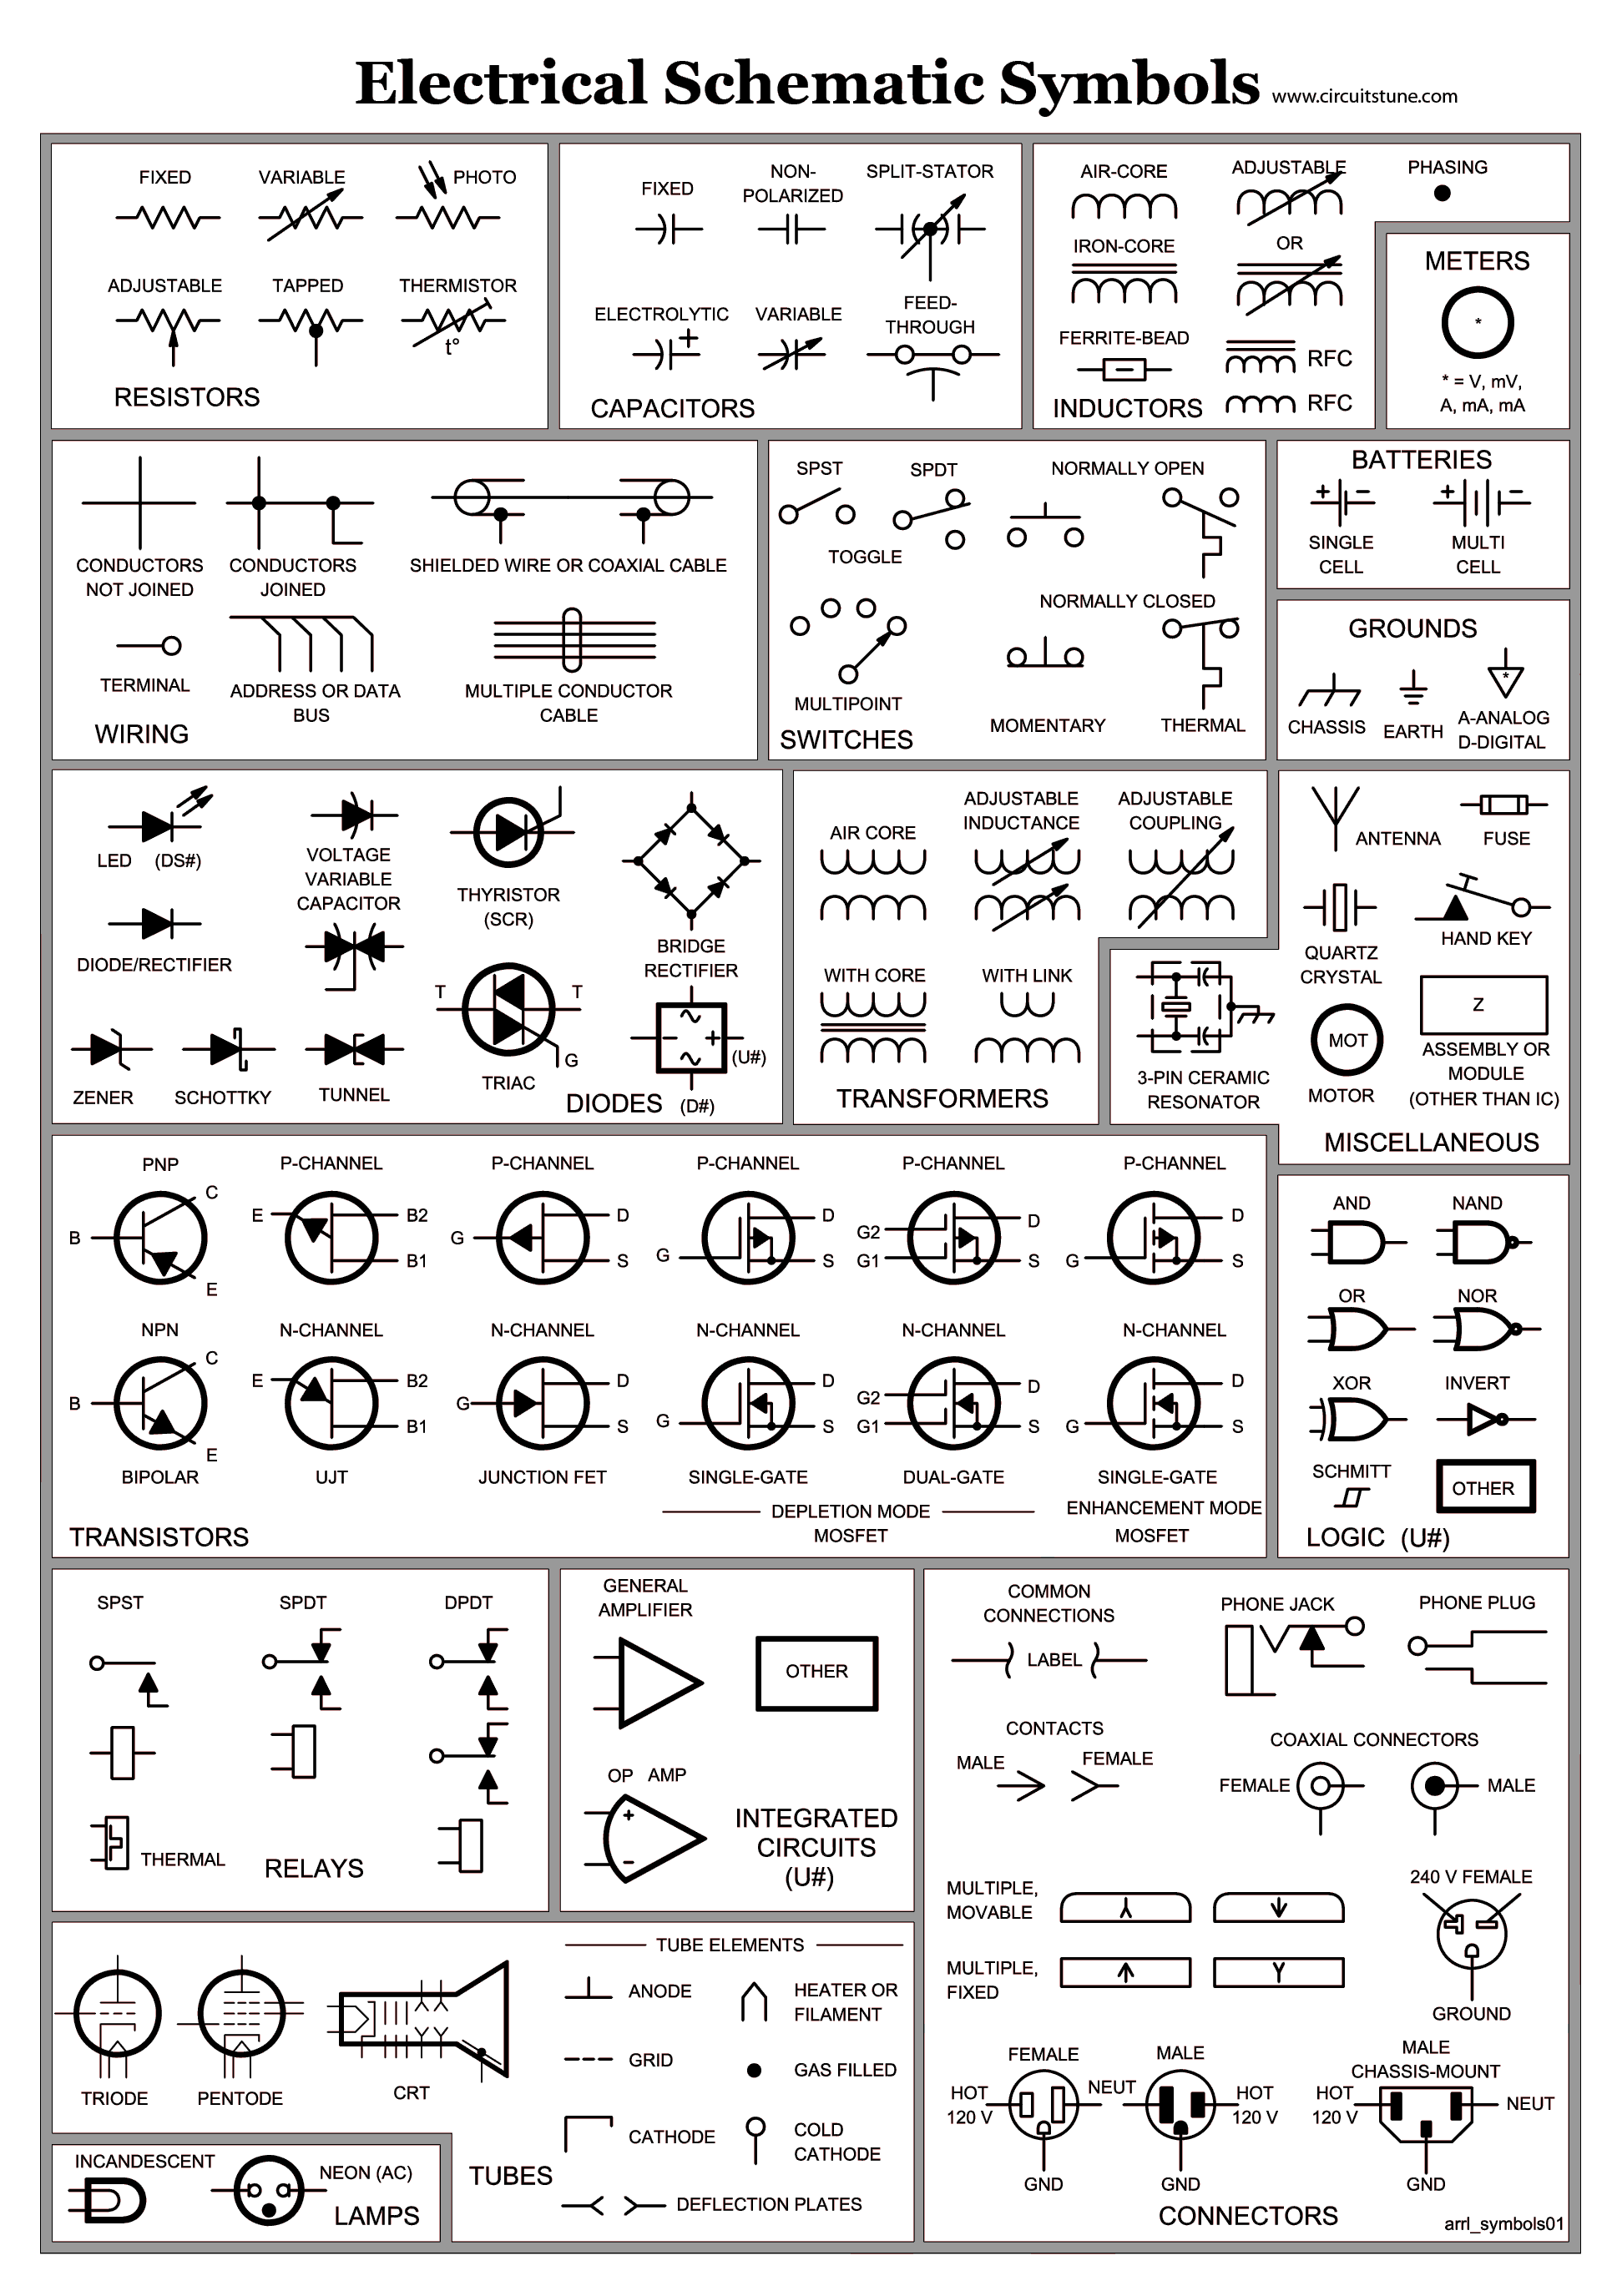 electrical schematic symbols wire diagram symbols automotive wiring rh pinterest com car wiring schematic symbols Industrial Electrical Wiring Schematic Symbols